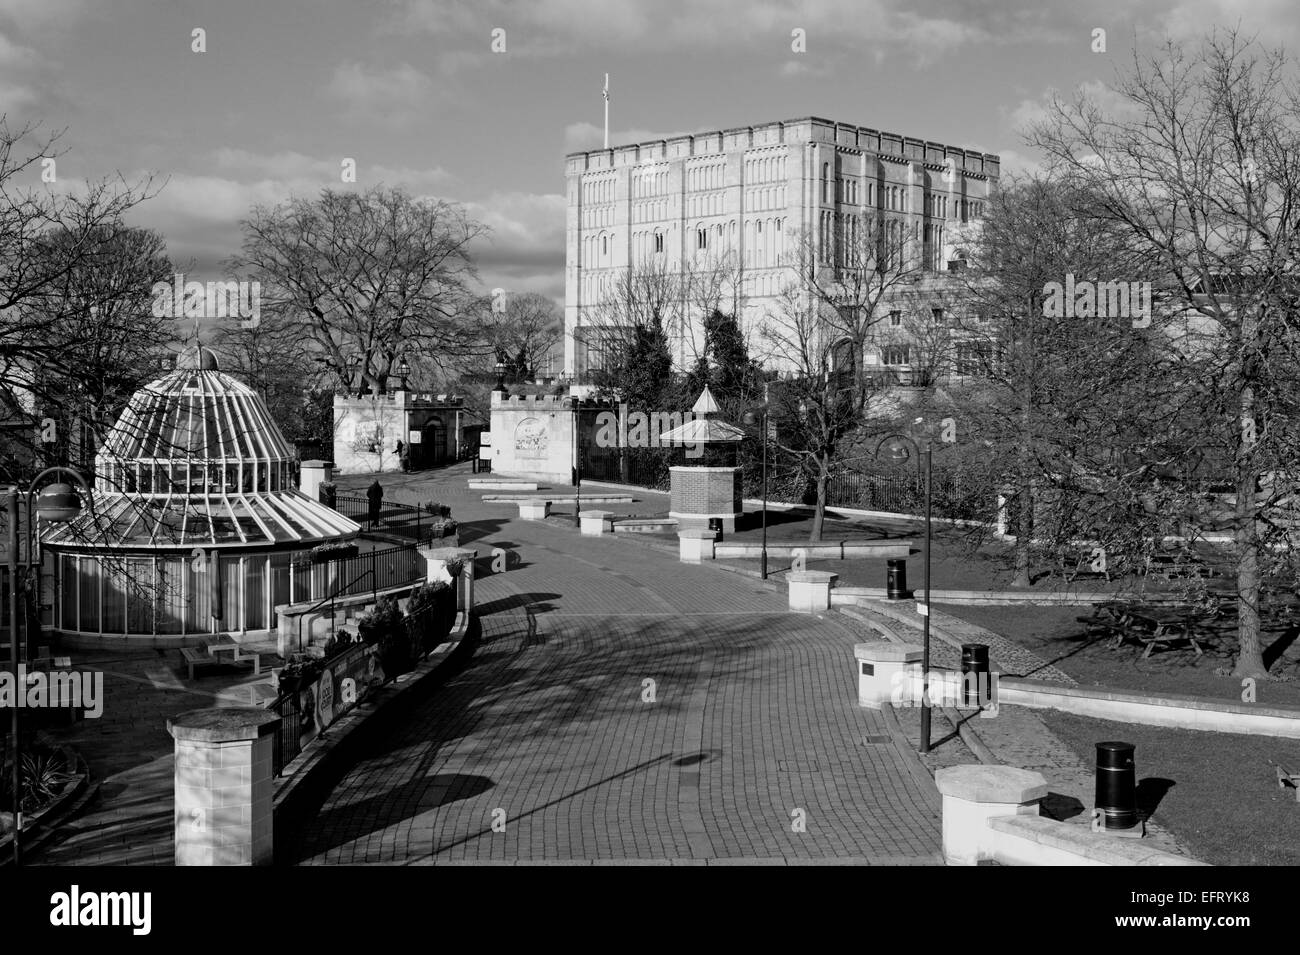 A view of the Castle Museum in the city centre at Norwich, Norfolk, England, United Kingdom. - Stock Image